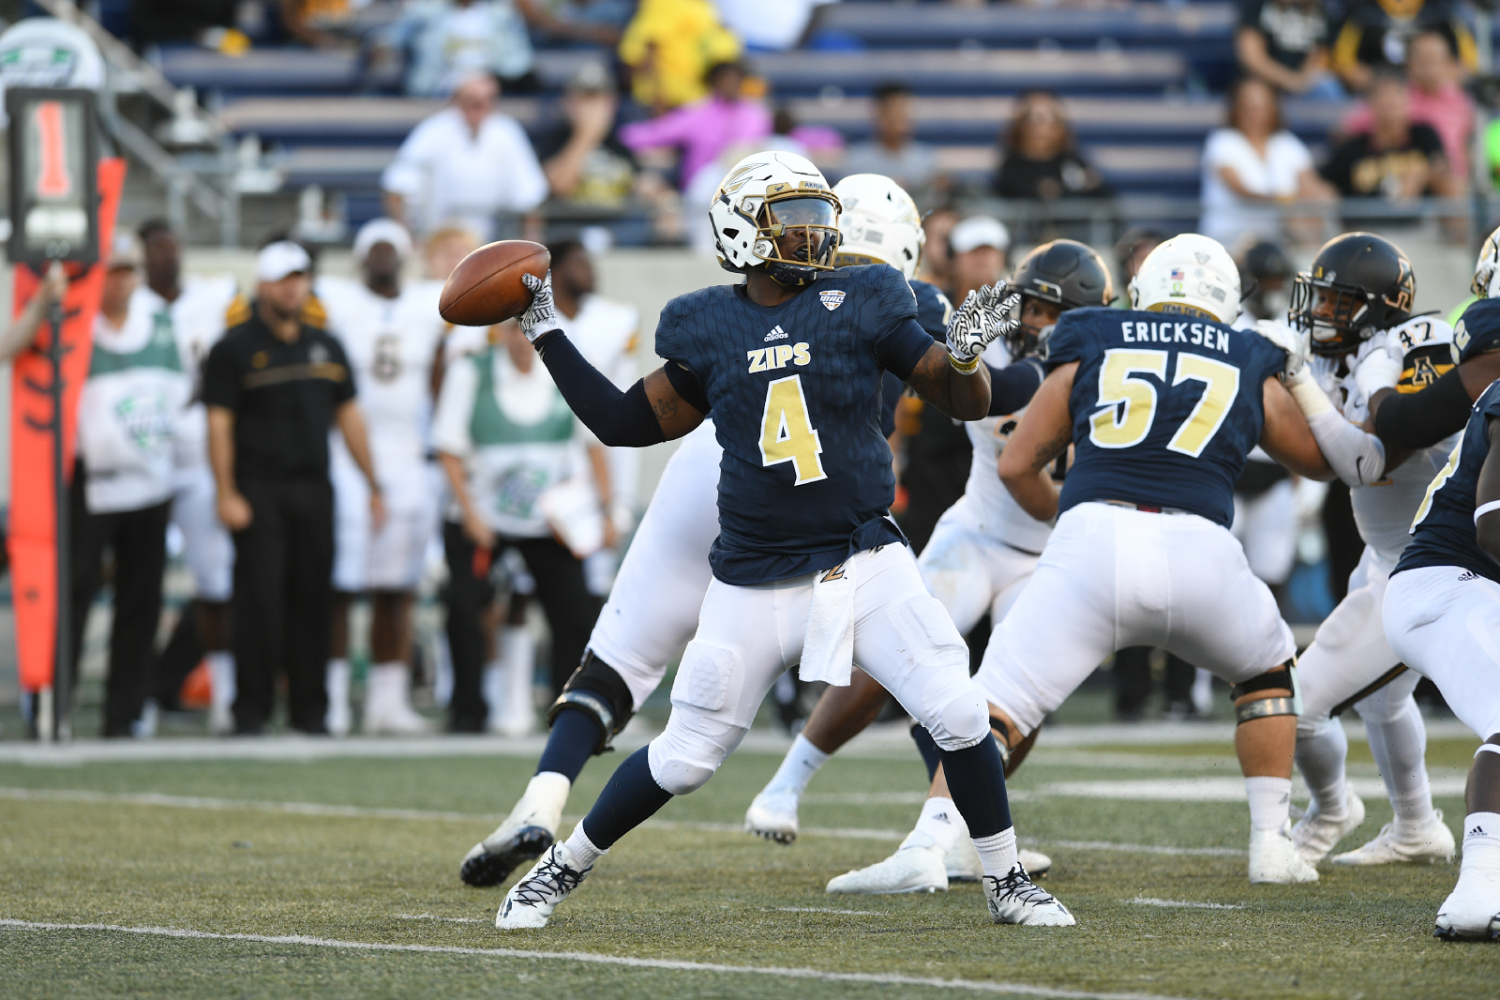 No. 4, Tommy Woodson in action for the Zips.